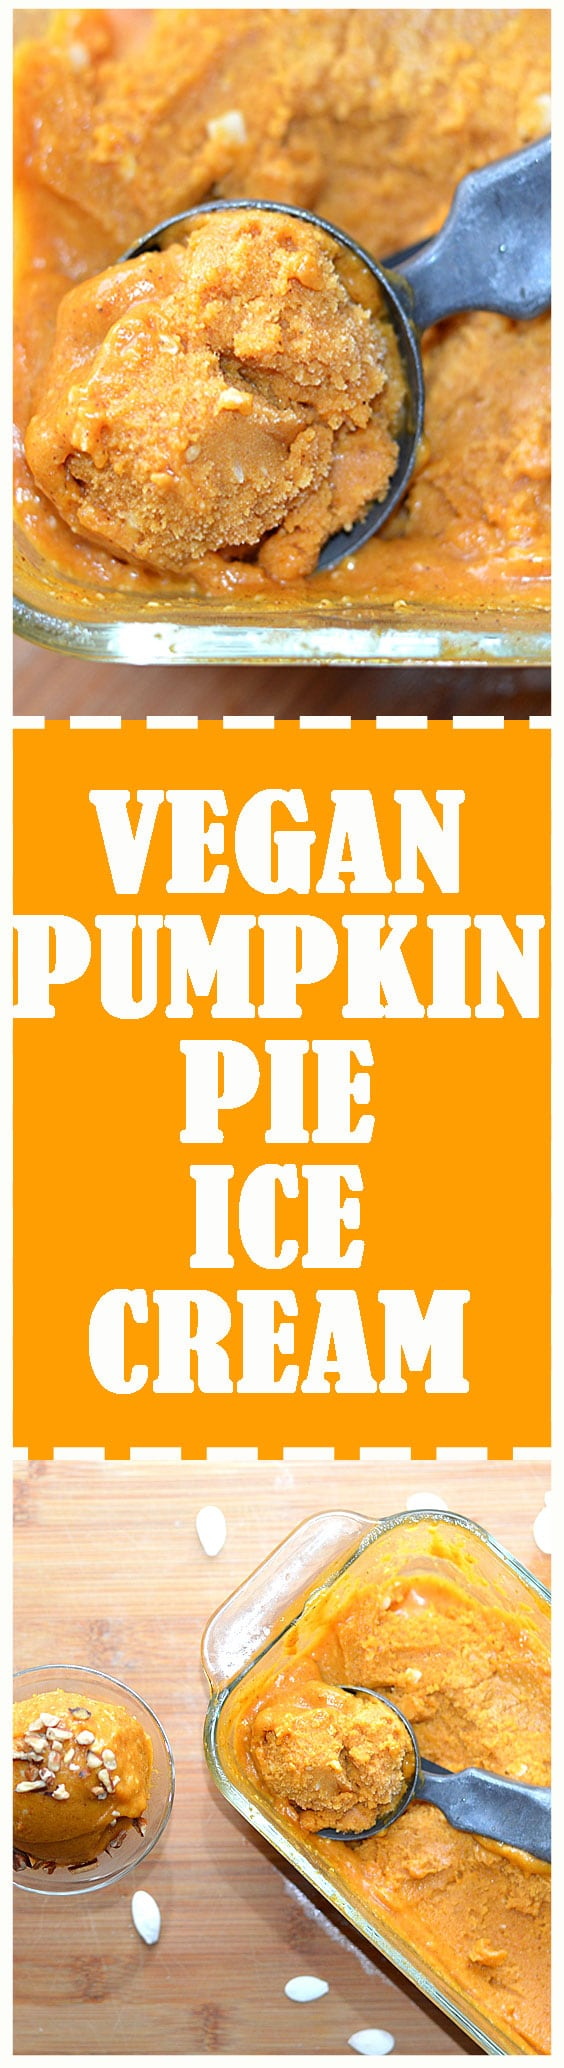 pumpkin-ice-cream-pinterest